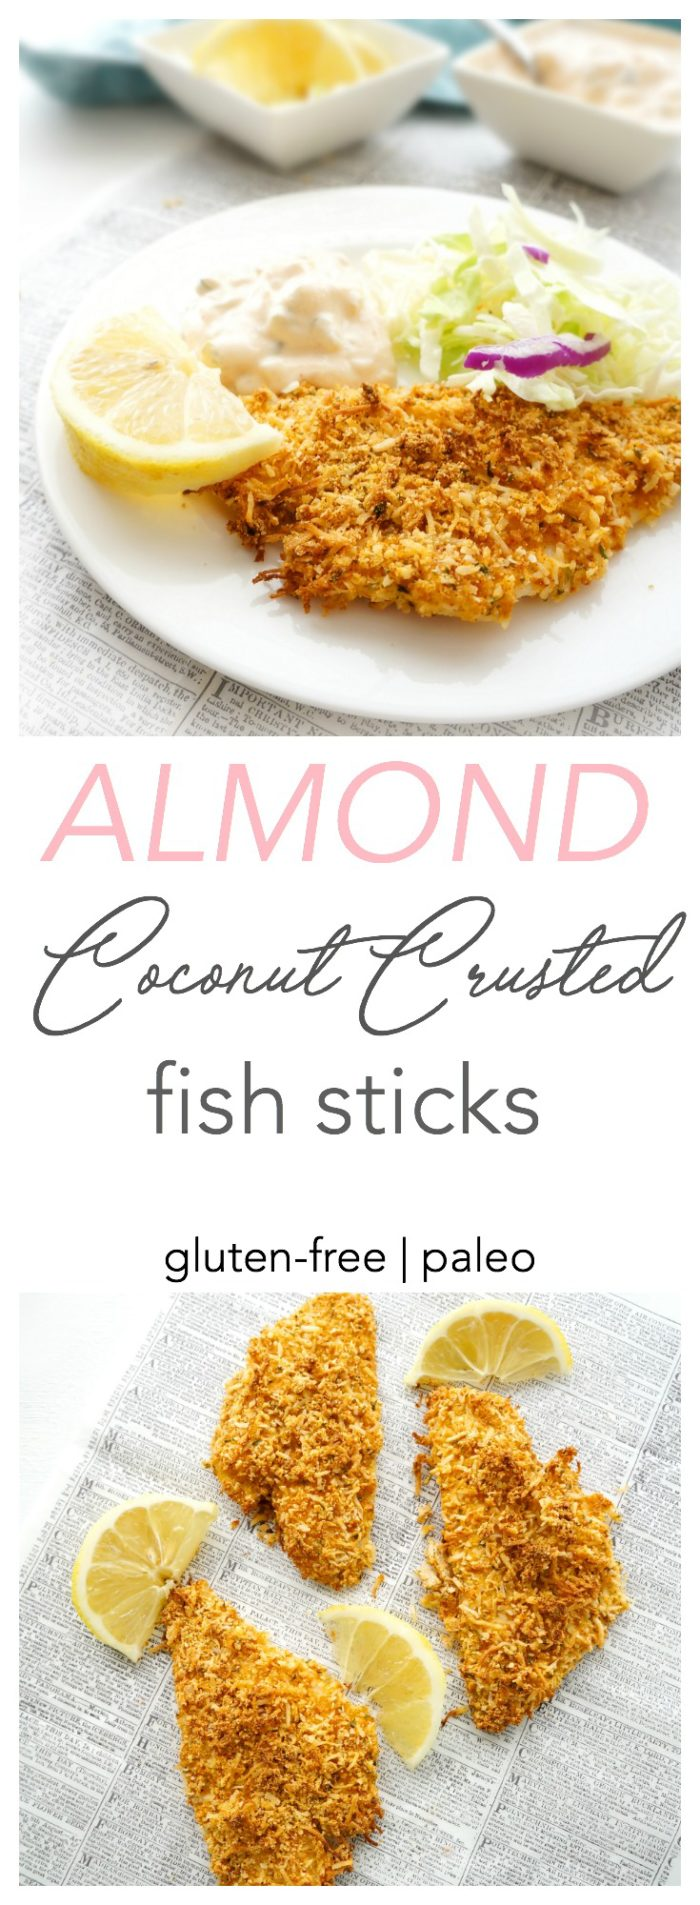 Haute healthy living almond coconut crusted fish for Healthy fish sticks